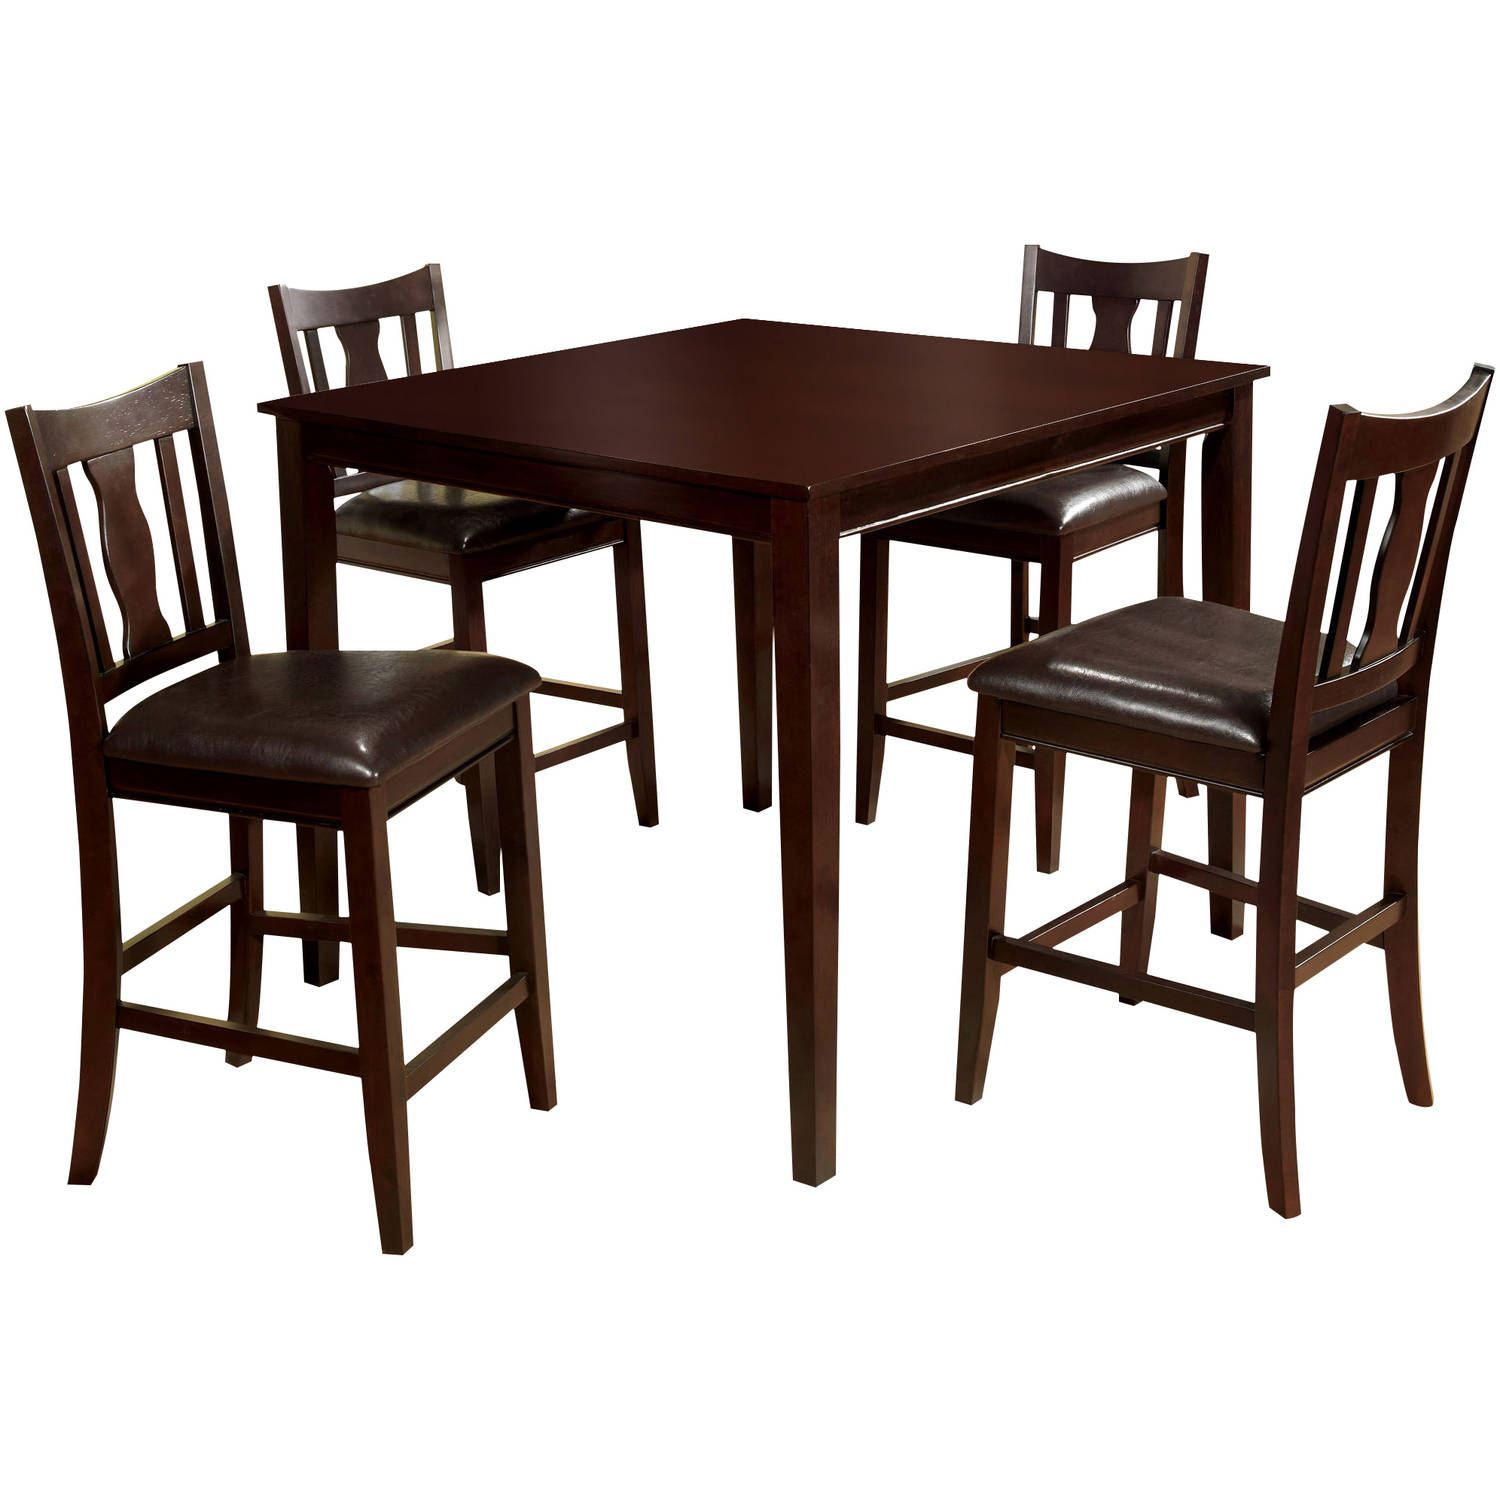 Furniture Of America Jinson Transitional 5 Piece Counter Height Dining Set,  Espresso